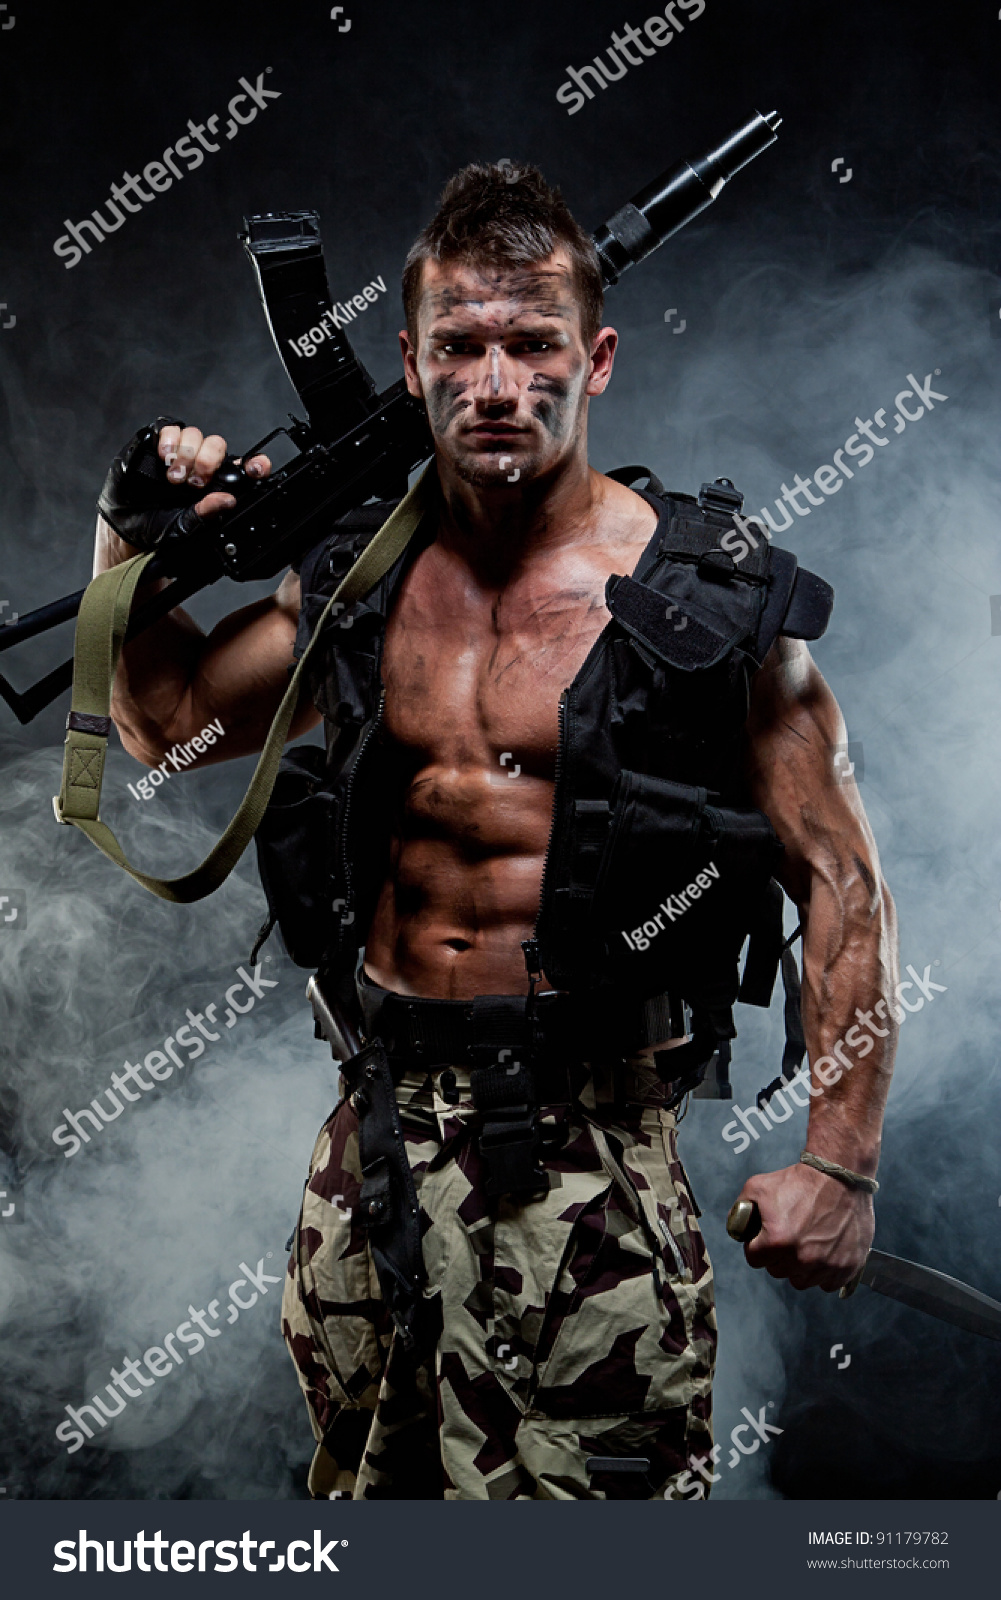 Nude Army Men Stock Photos, Pictures & Royalty-Free Images